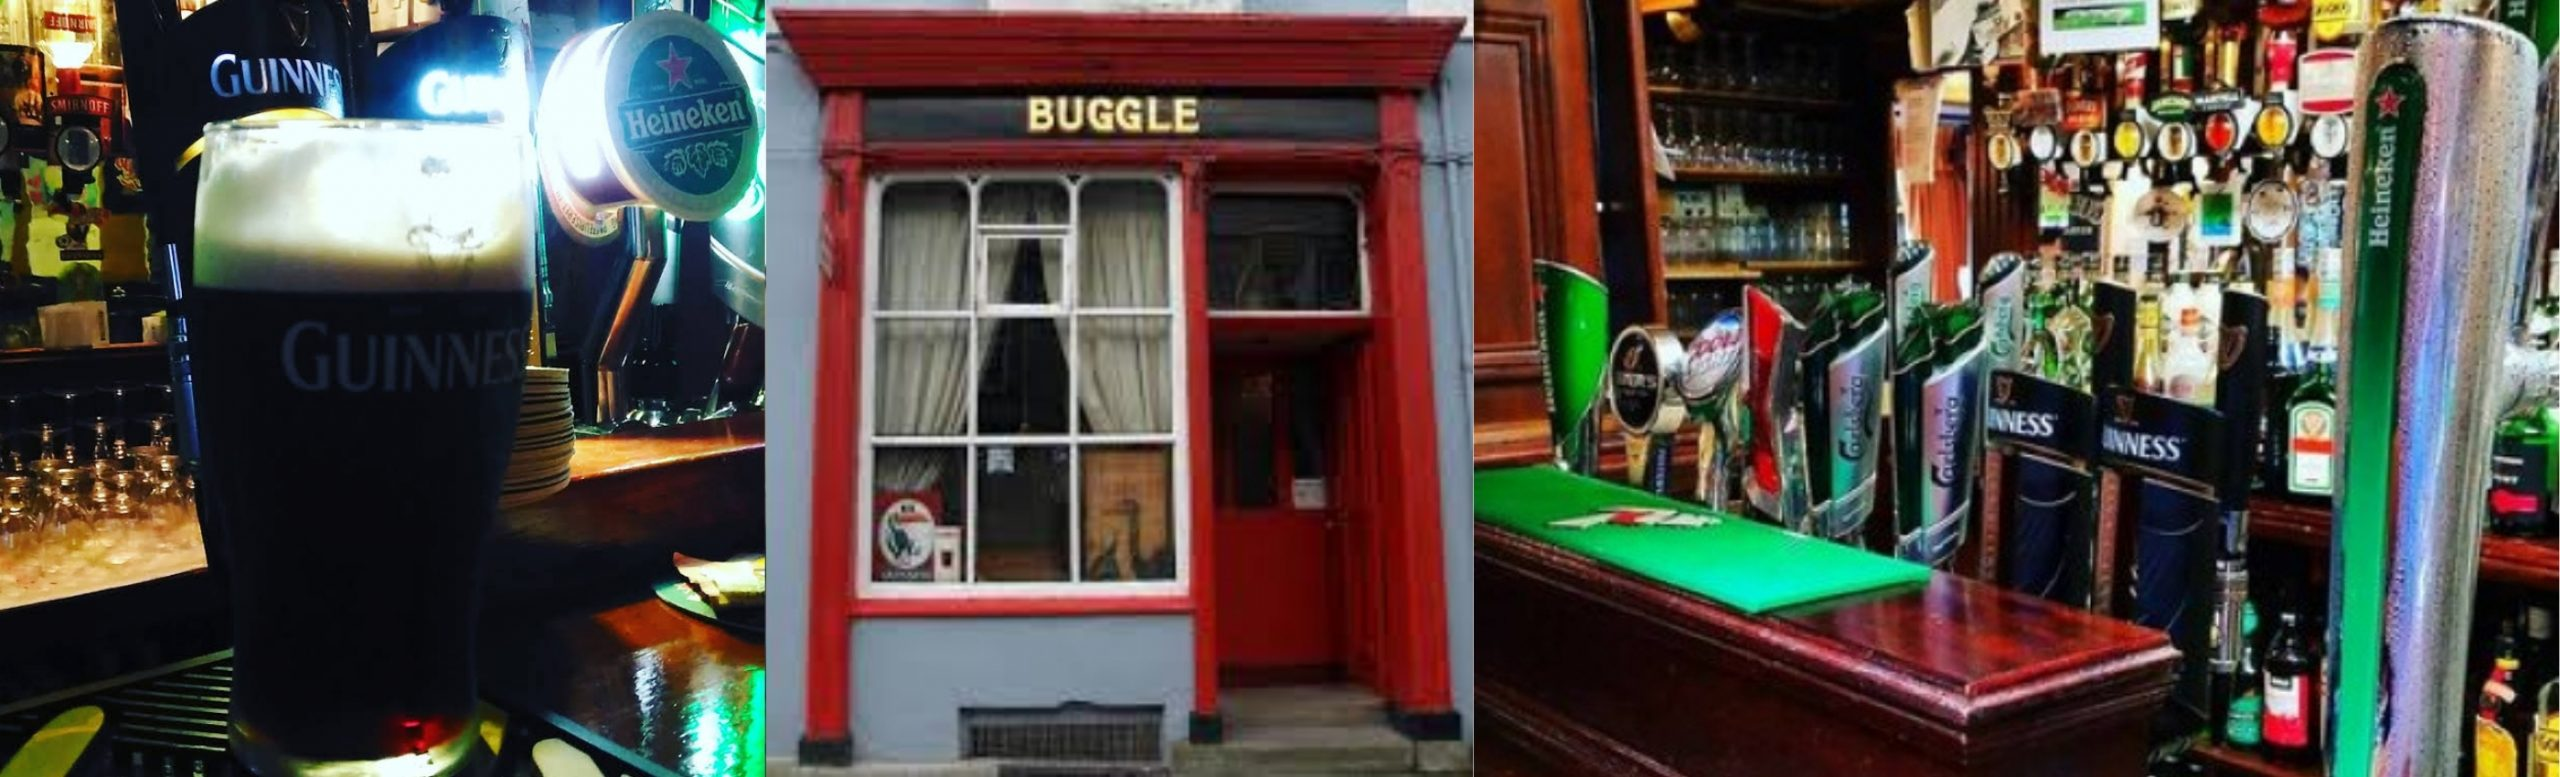 Buggle's Bar & Accommodation